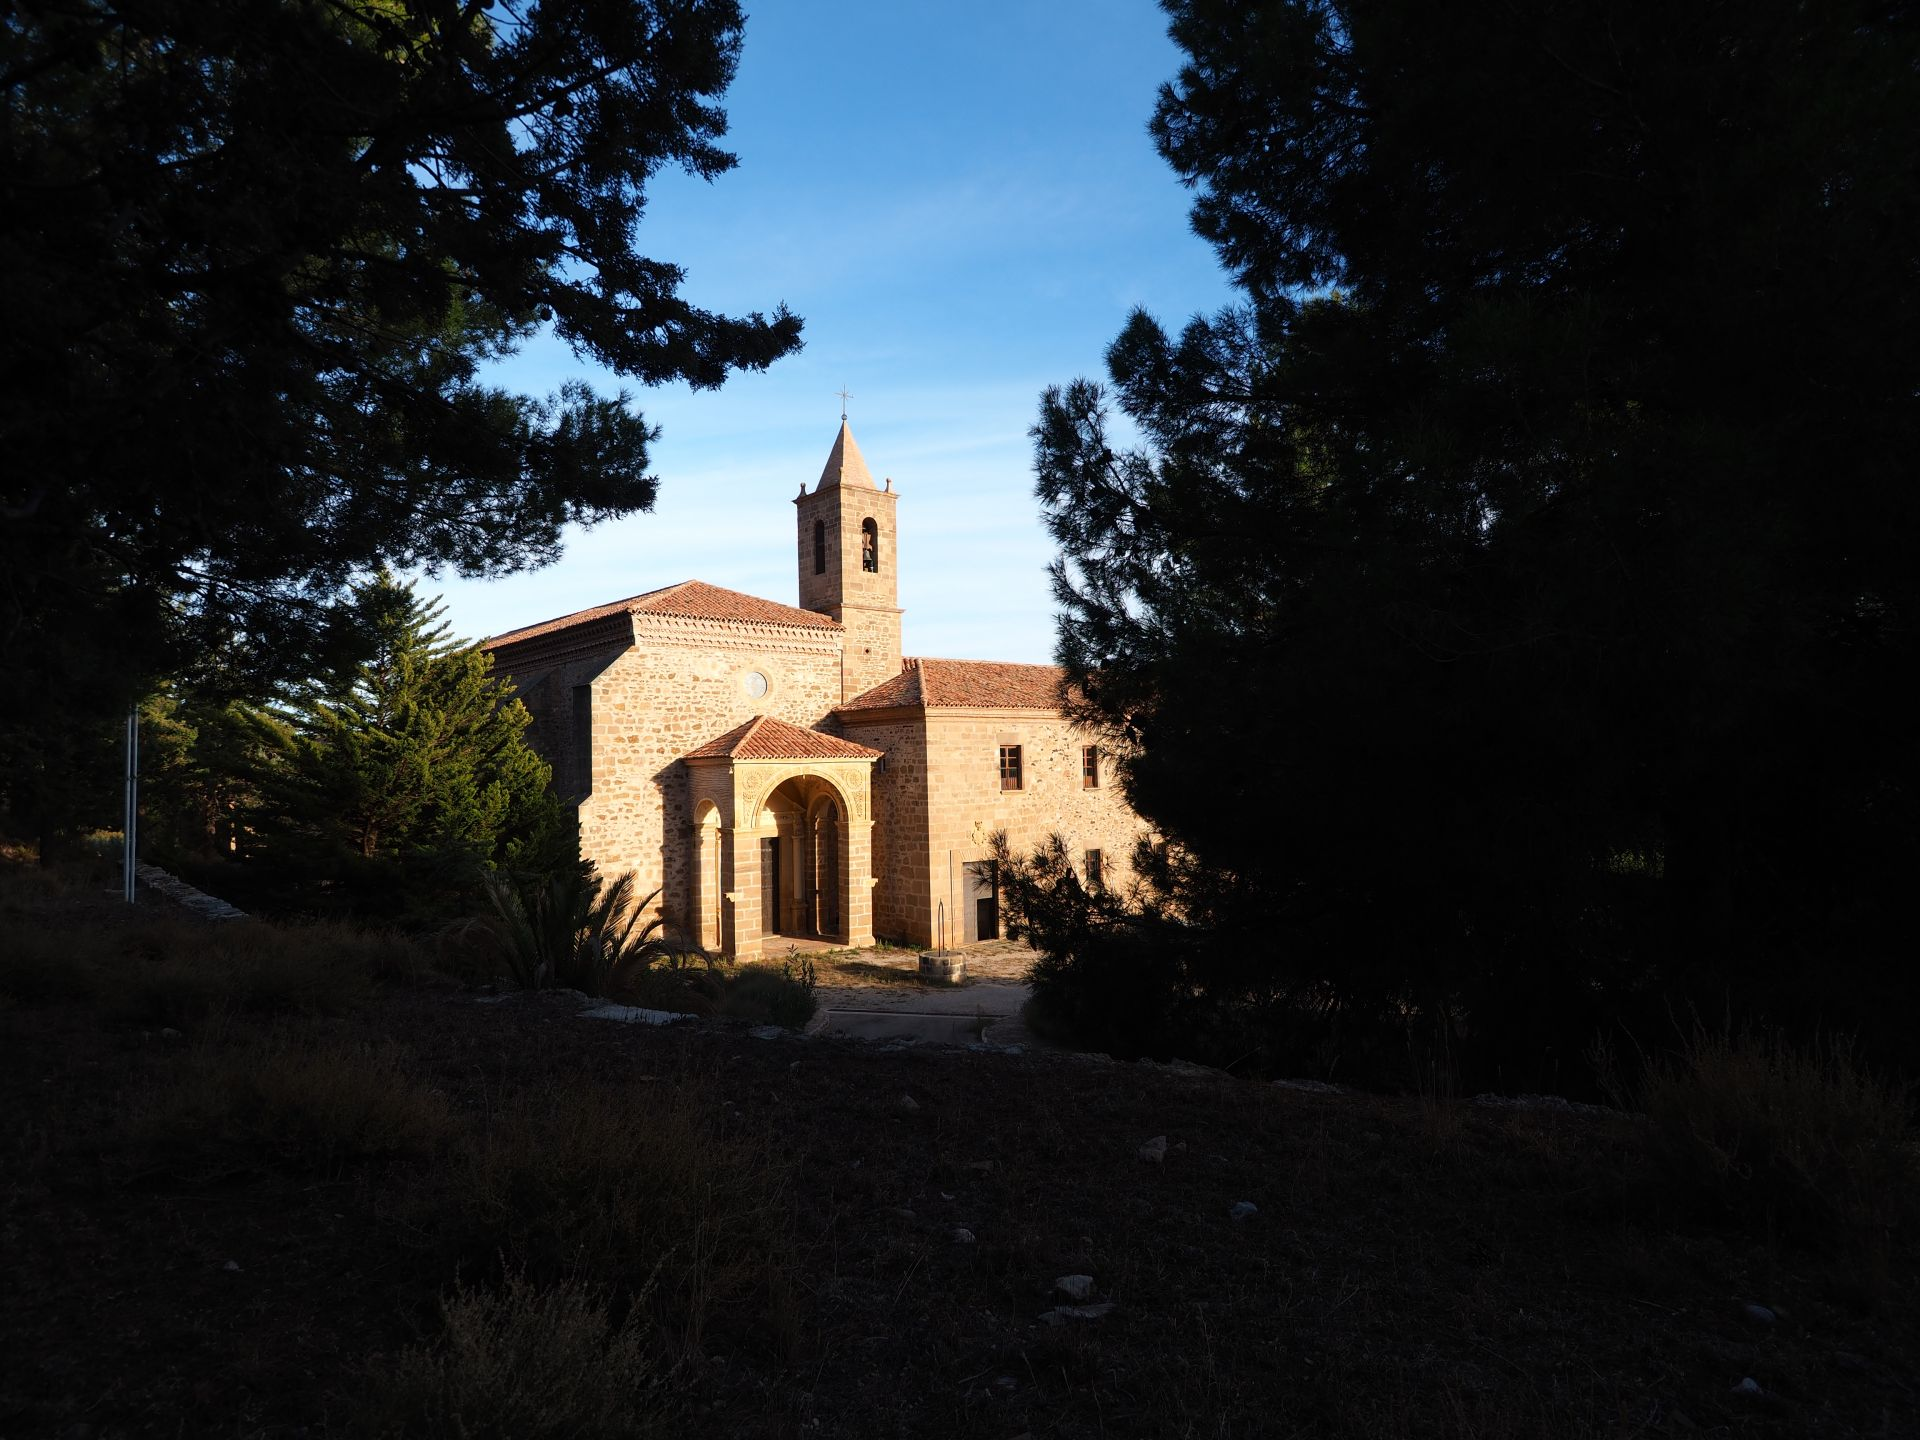 sky, virgin, peace, monastery, temple, sanctuary, olive grove, teruel, tree, house of god, house of prayer, creation